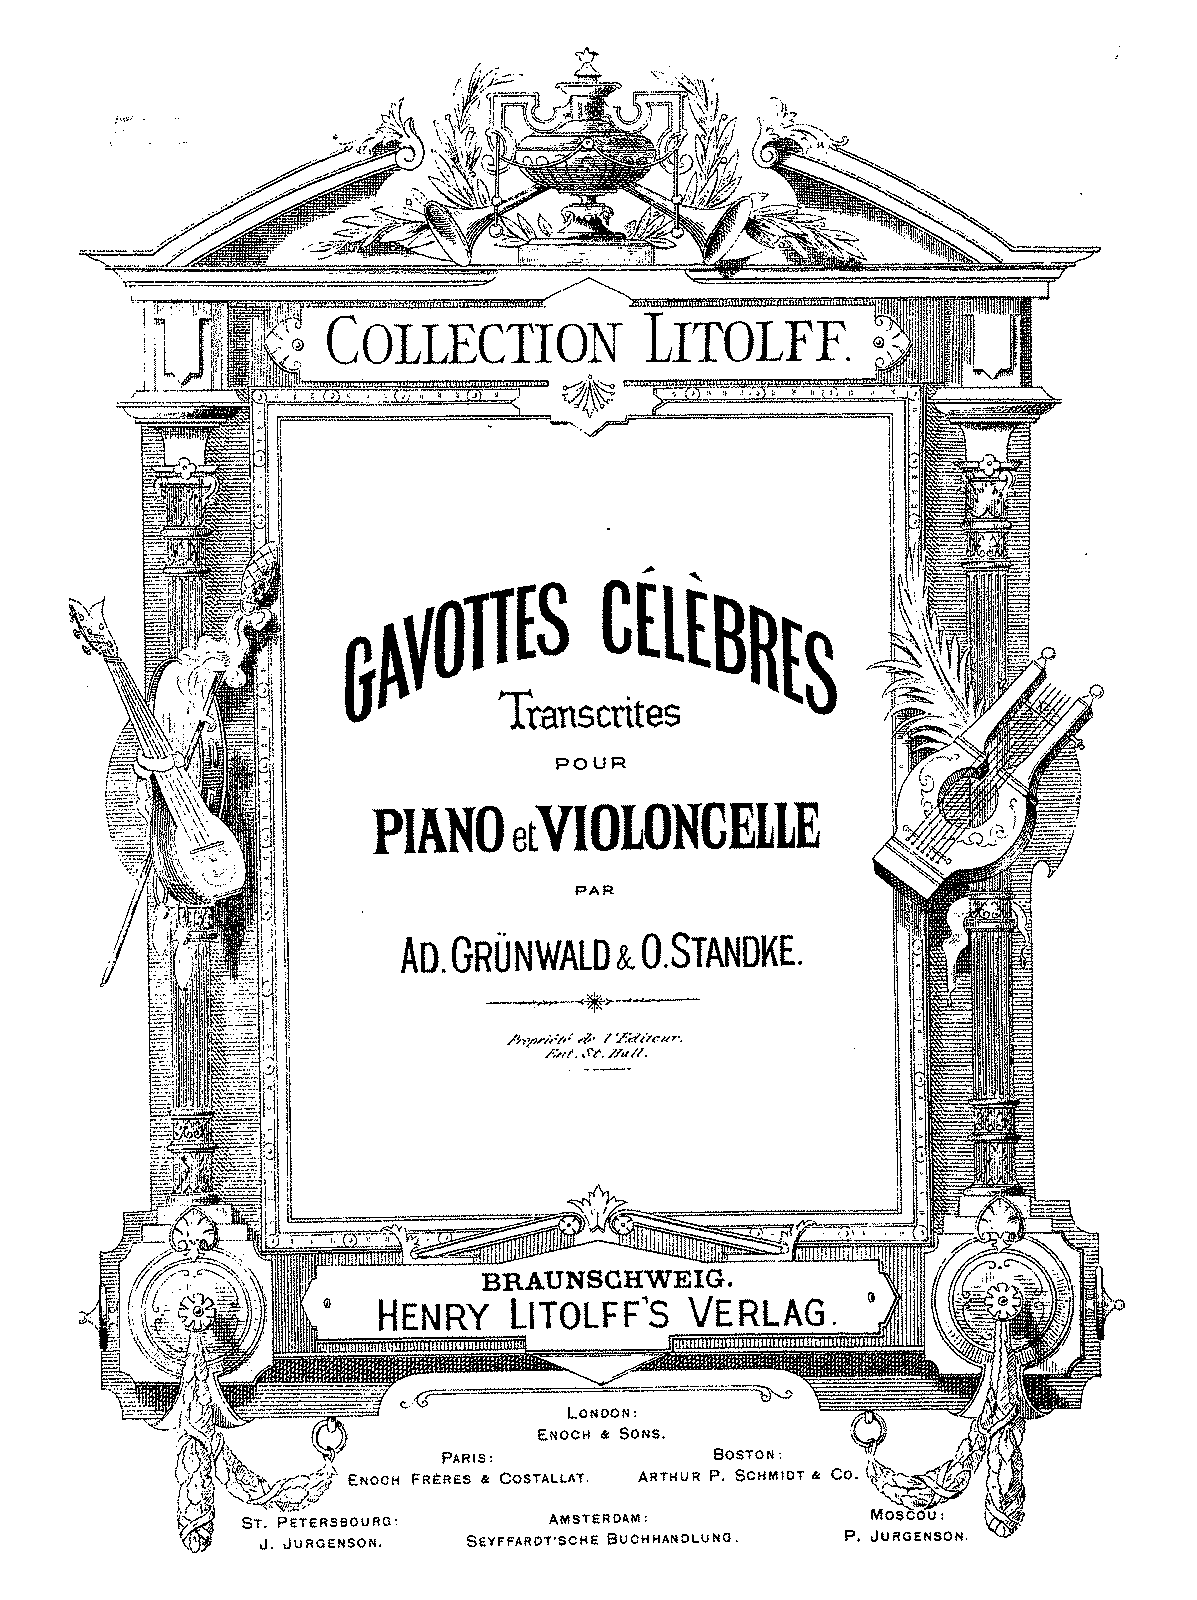 PMLP36472-Gluck - Gavotte D'Iphigenie en Aulide (Grunwald e Standke) for cello and piano.pdf